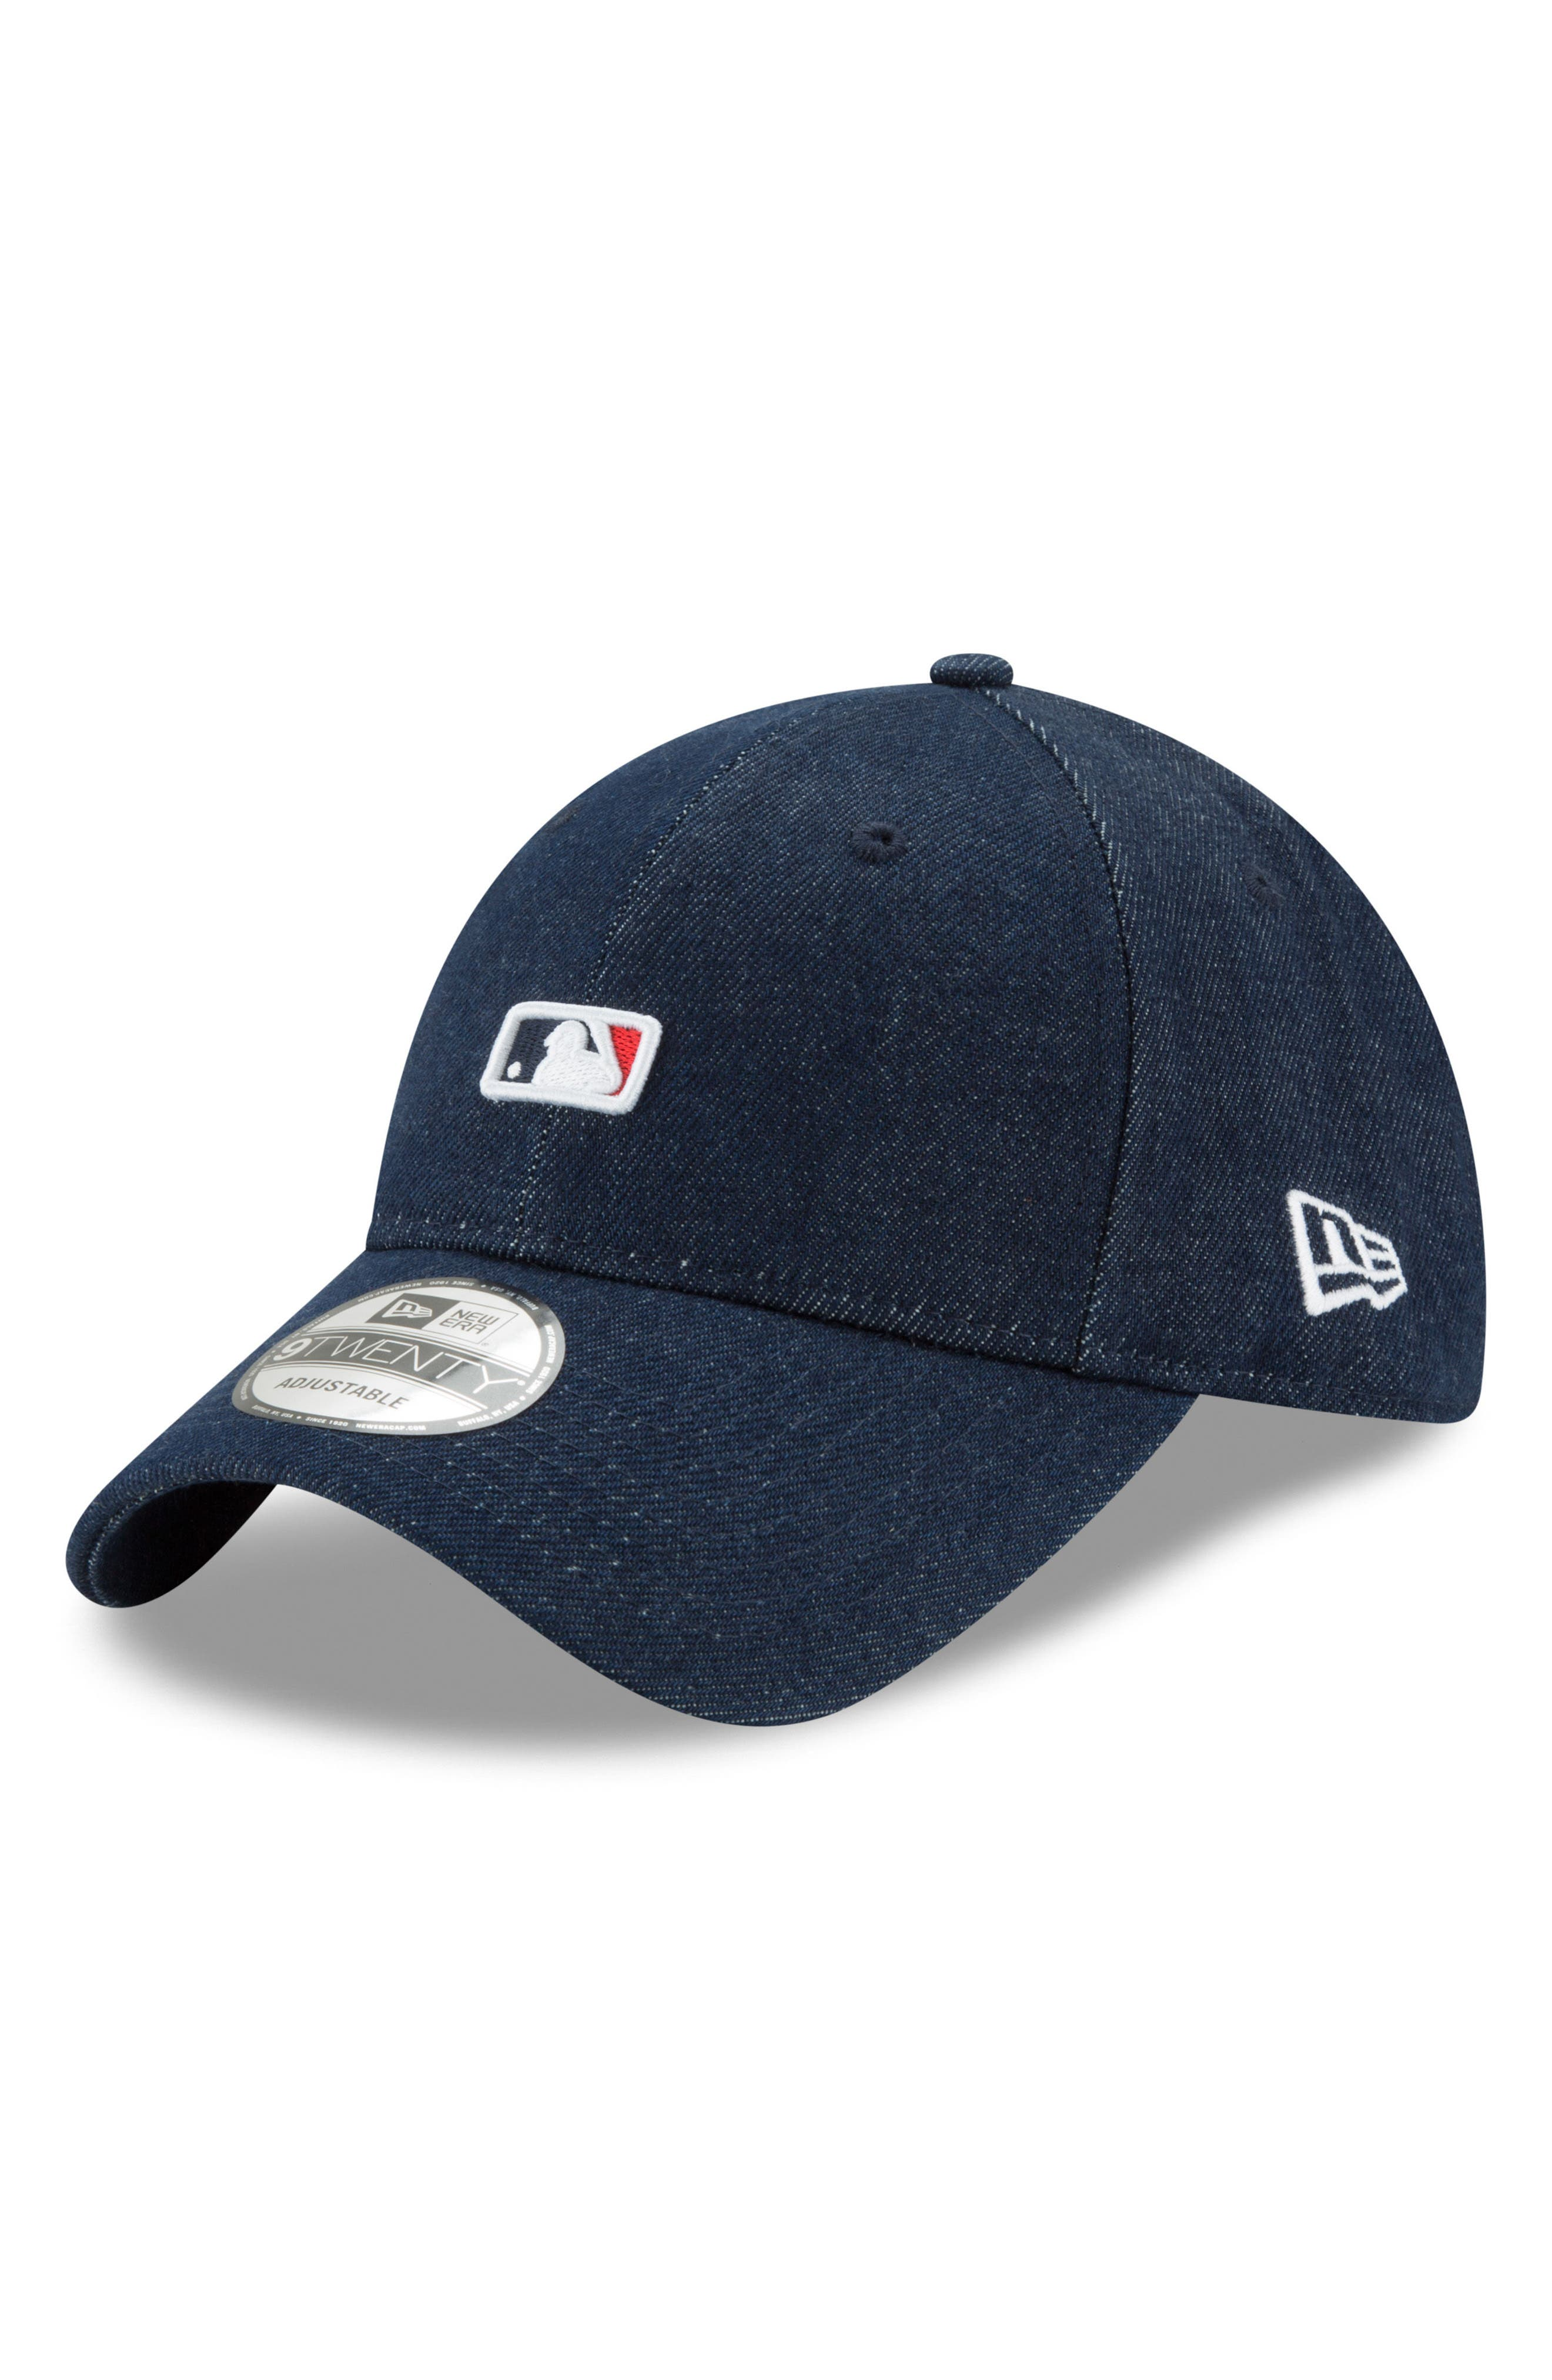 x Levi's<sup>®</sup> MLB Micro Batterman Baseball Cap,                             Main thumbnail 1, color,                             BLACK